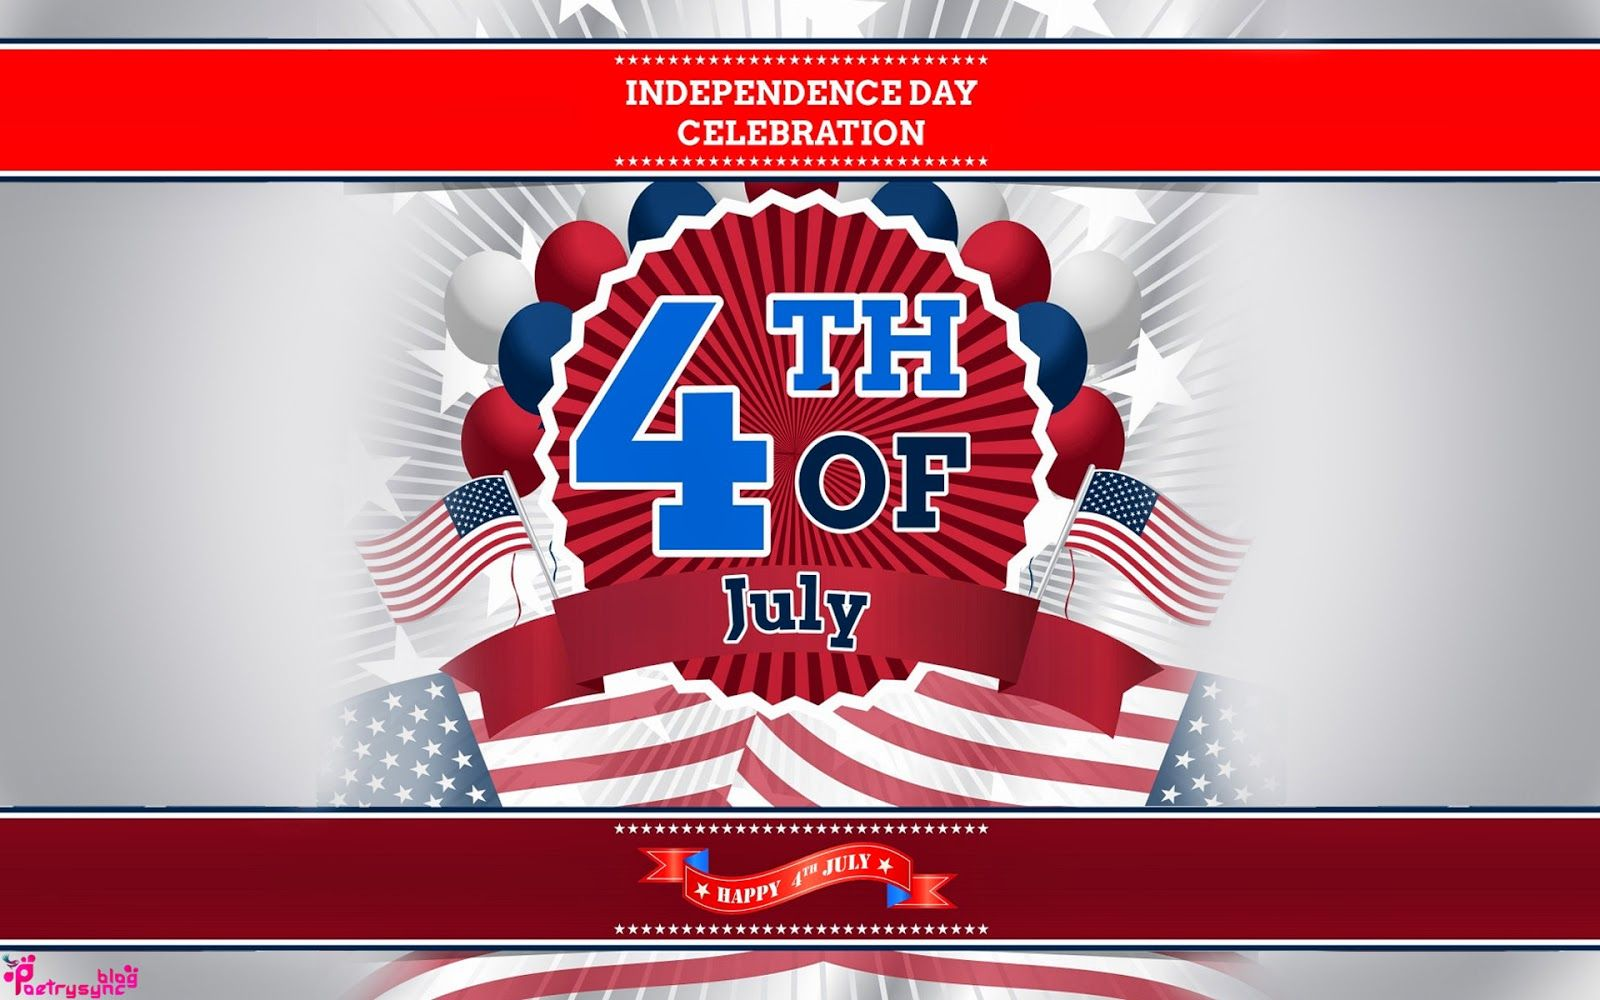 Poetry Independence Day 4th of July Wishes Quotes and